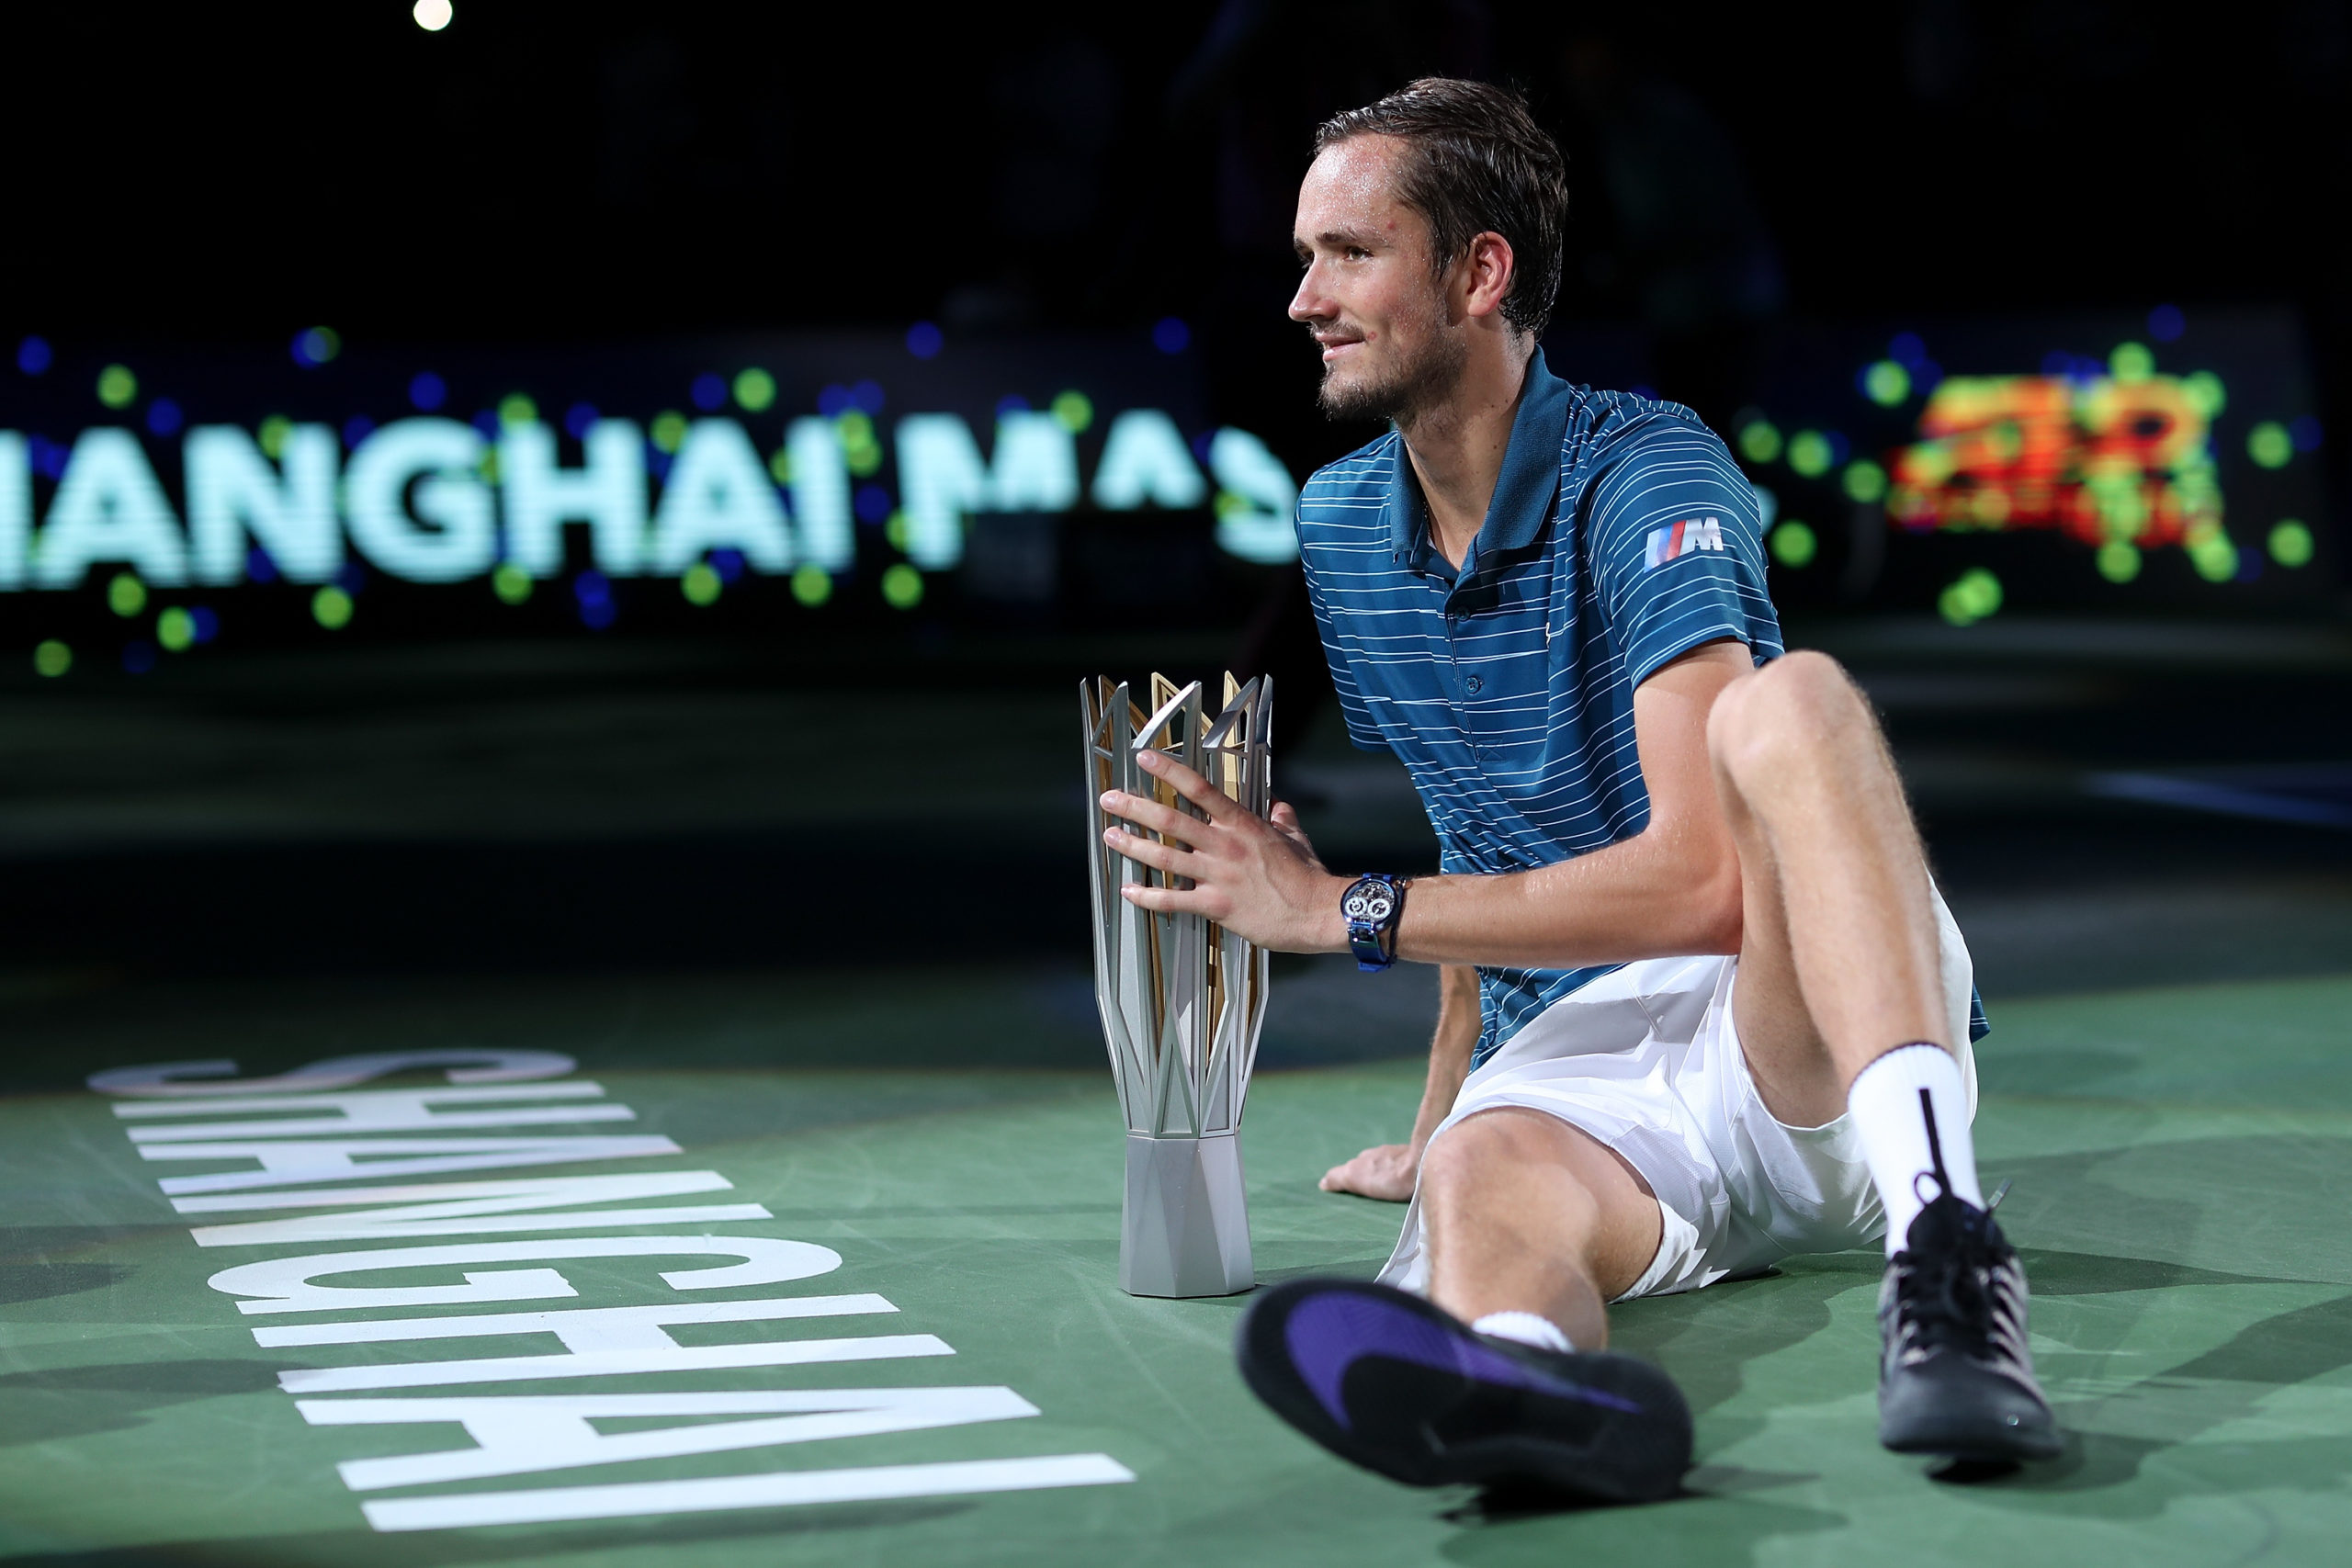 SHANGHAI, CHINA - OCTOBER 13:  Daniil Medvedev of Russia with the trophy during the Award Ceremony after winning the Men's Singles final match against Alexander Zverev of Germany on day nine of 2019 Shanghai Rolex Masters at Qi Zhong Tennis Centre on October 13, 2019 in Shanghai, China.  (Photo by Lintao Zhang/Getty Images)